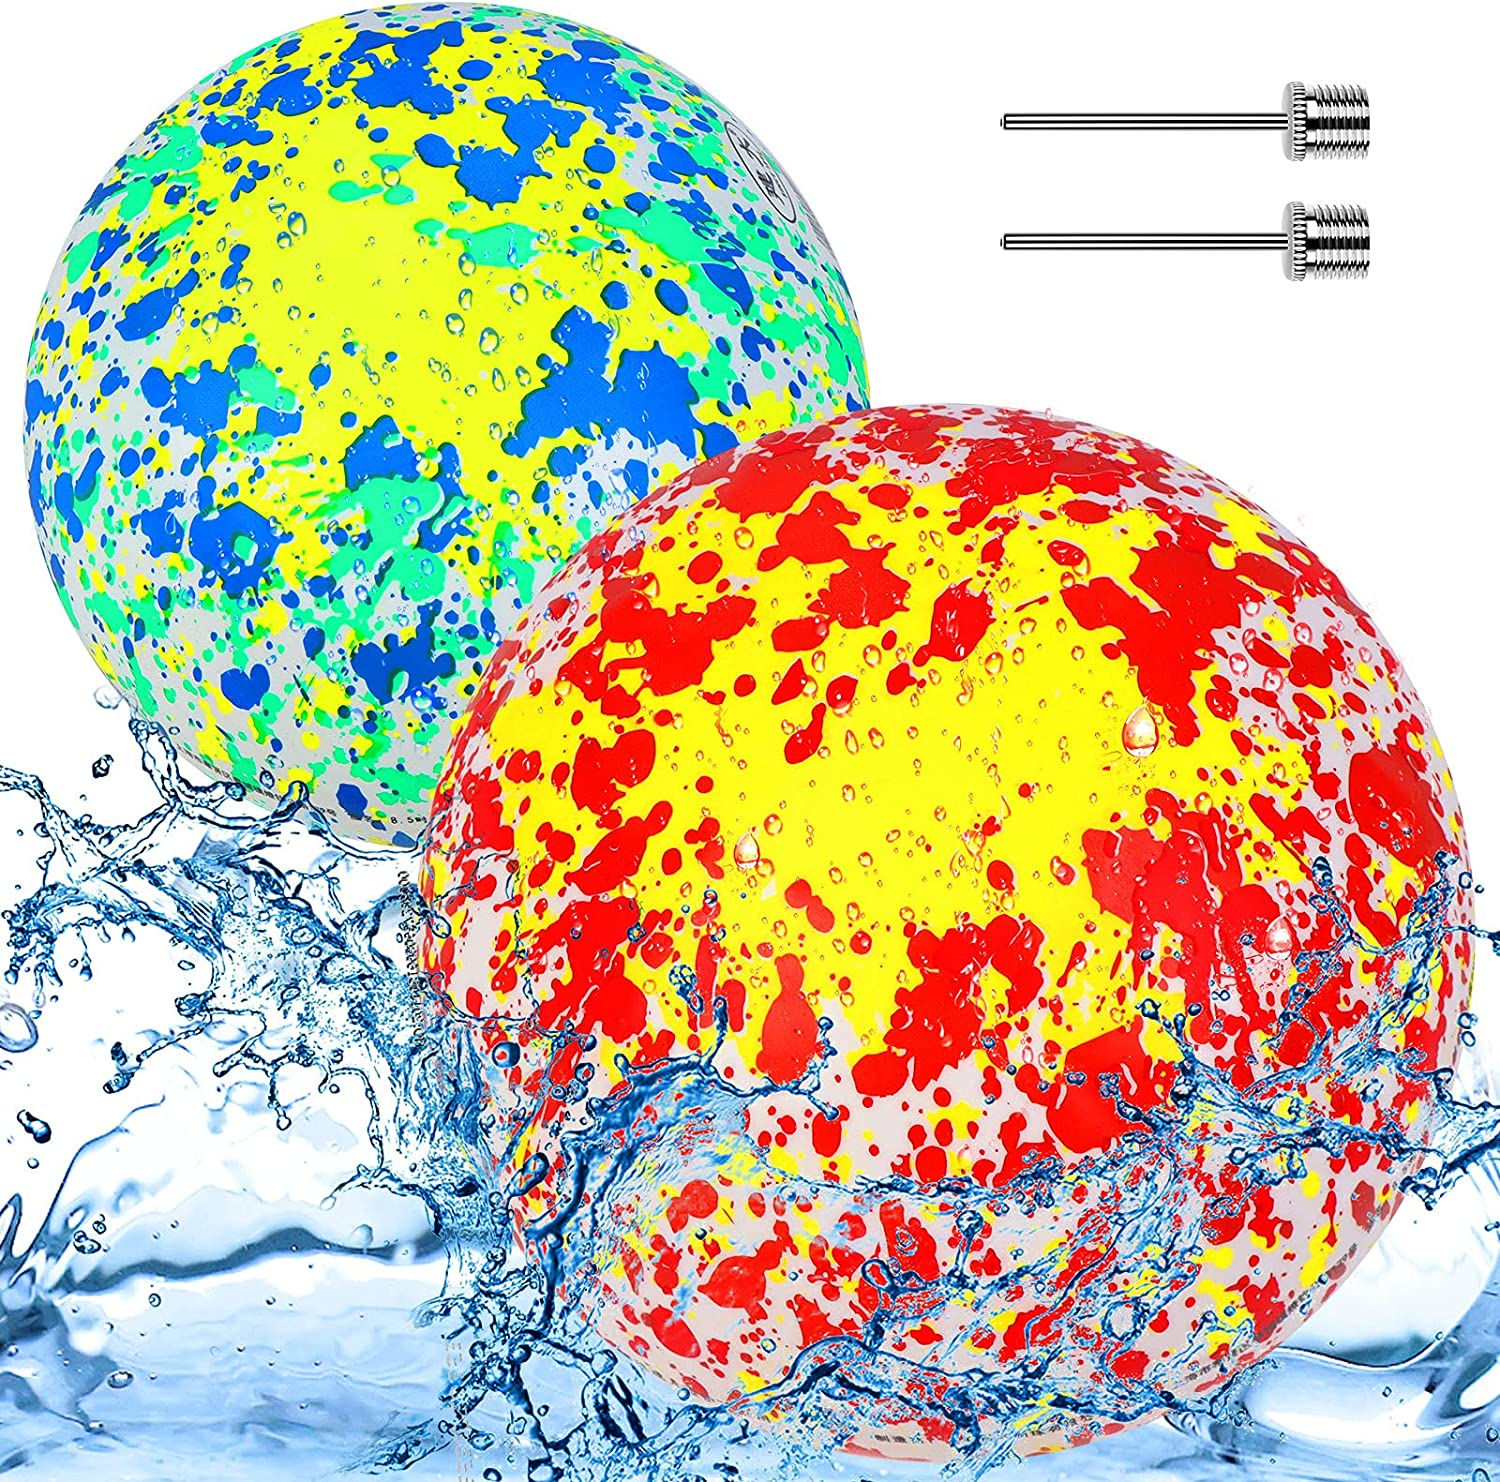 37YIMU 2Pcs New arrival Swimming Pool Ball 8.5 favorite Toy Inch Water